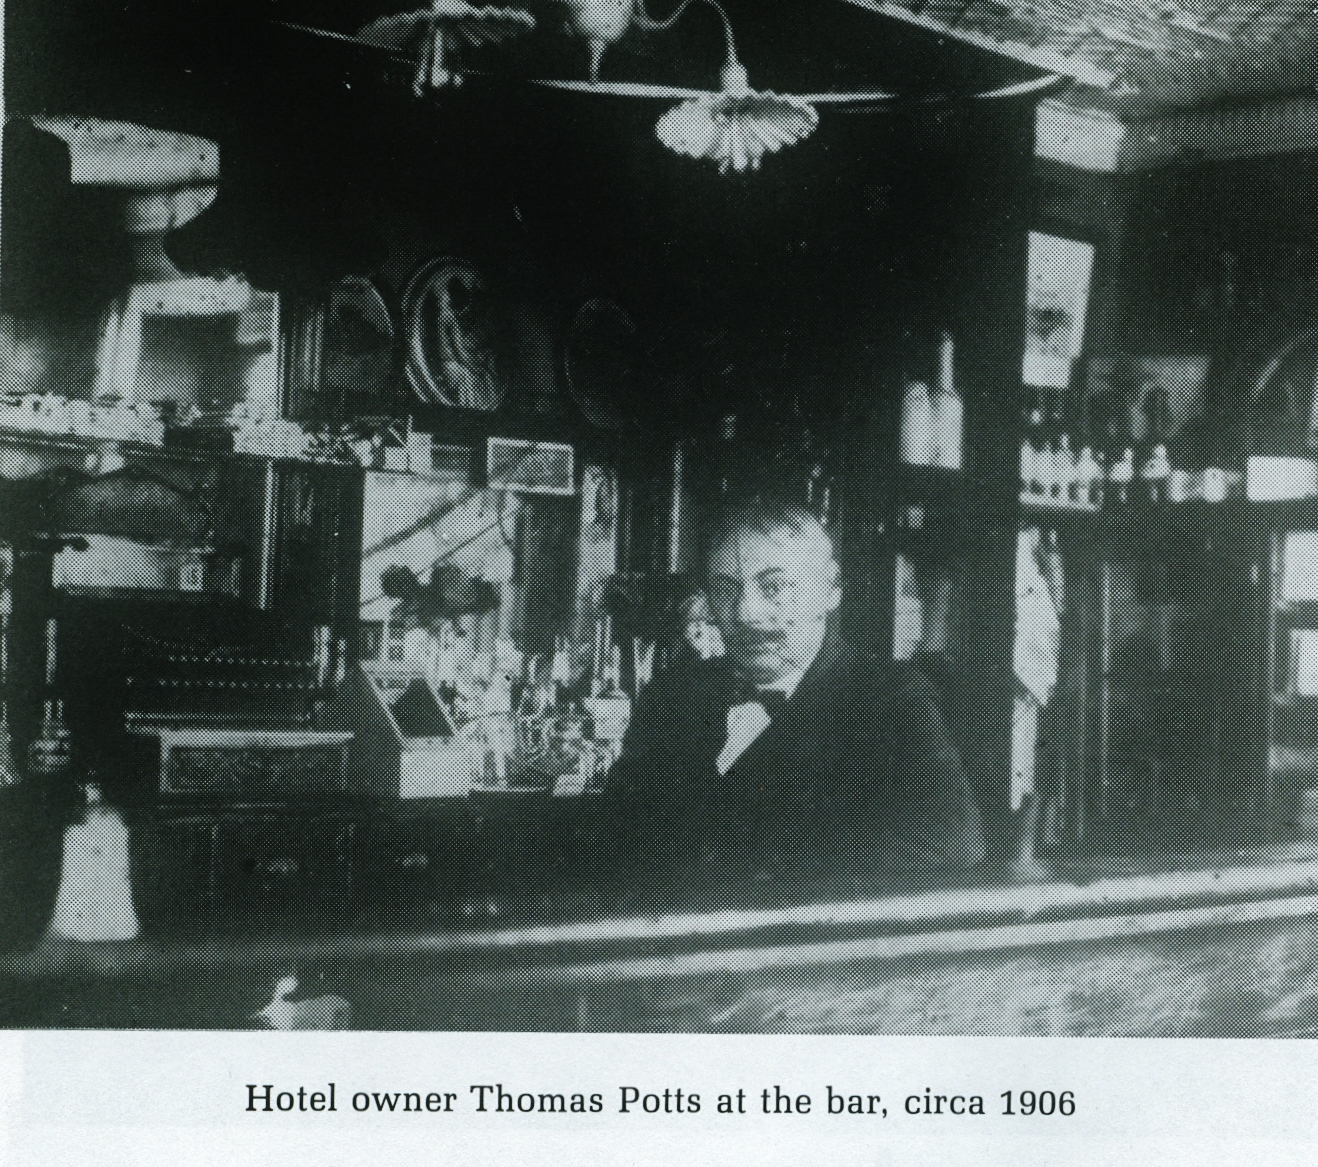 As a young man, Thomas Potts worked at Deloro Smelting and Refining Co. Ltd, and ran the boarding house for three years. He operated the old St. James Hotel,, the Royal Hotel in Marmora, the Tipperary House on Crowe Lake, and Huyck's Hotel in Tweed (Tweedsmuir). Mr. Potts was also the oldest member of the Loyal orange lodge at the time of his death in 1952.